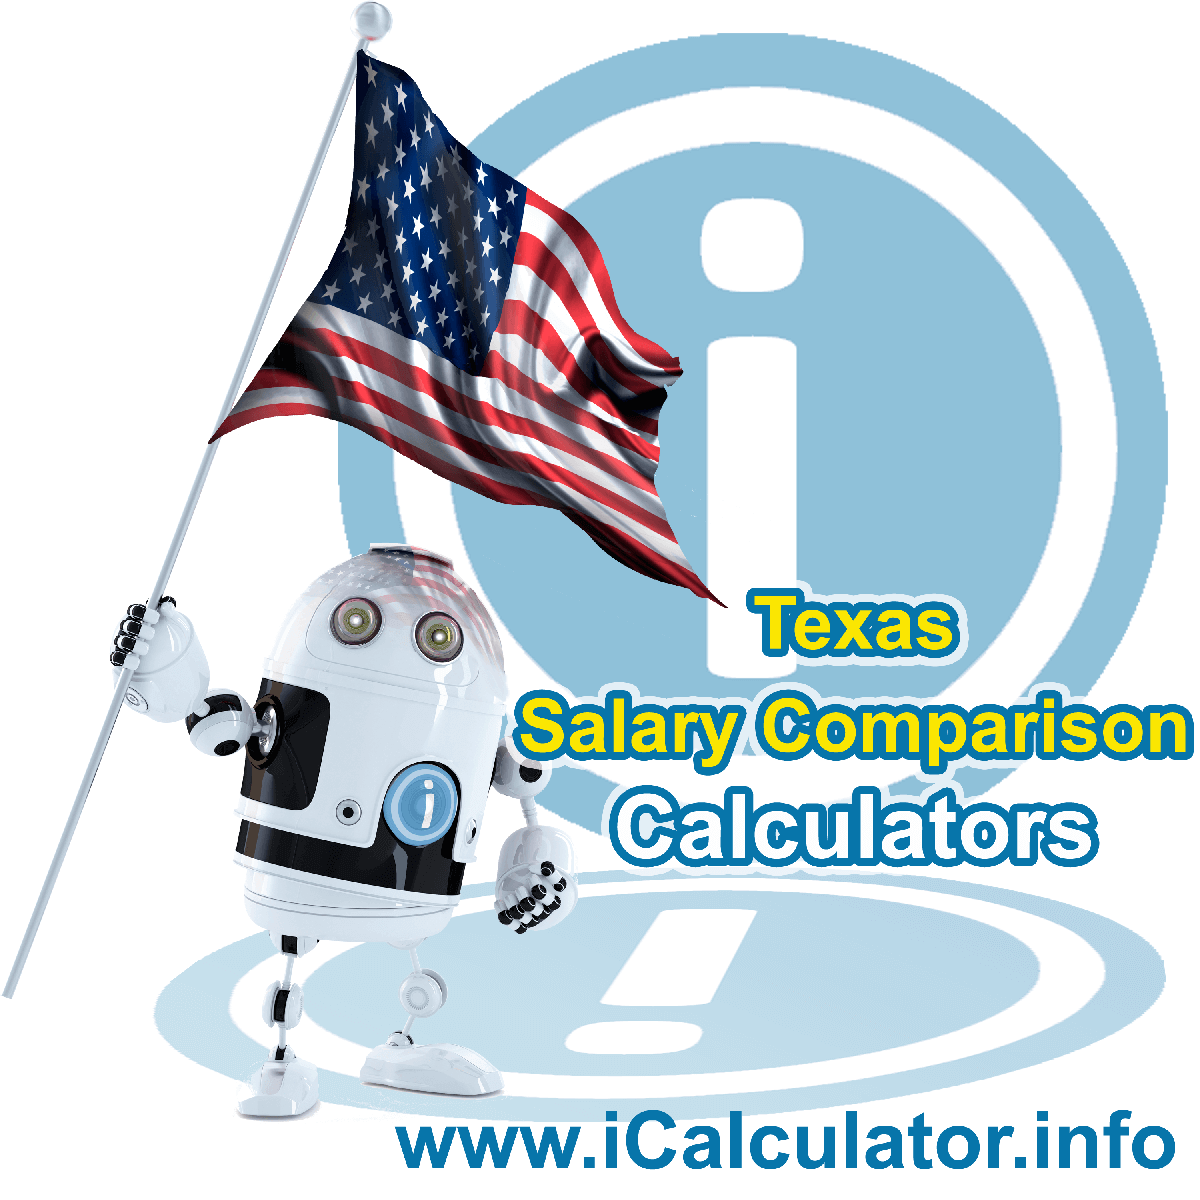 Texas Salary Comparison Calculator 2021 | iCalculator™ | The Texas Salary Comparison Calculator allows you to quickly calculate and compare upto 6 salaries in Texas or between other states for the 2021 tax year and historical tax years. Its an excellent tool for jobseekers, pay raise comparison and comparison of salaries between different US States